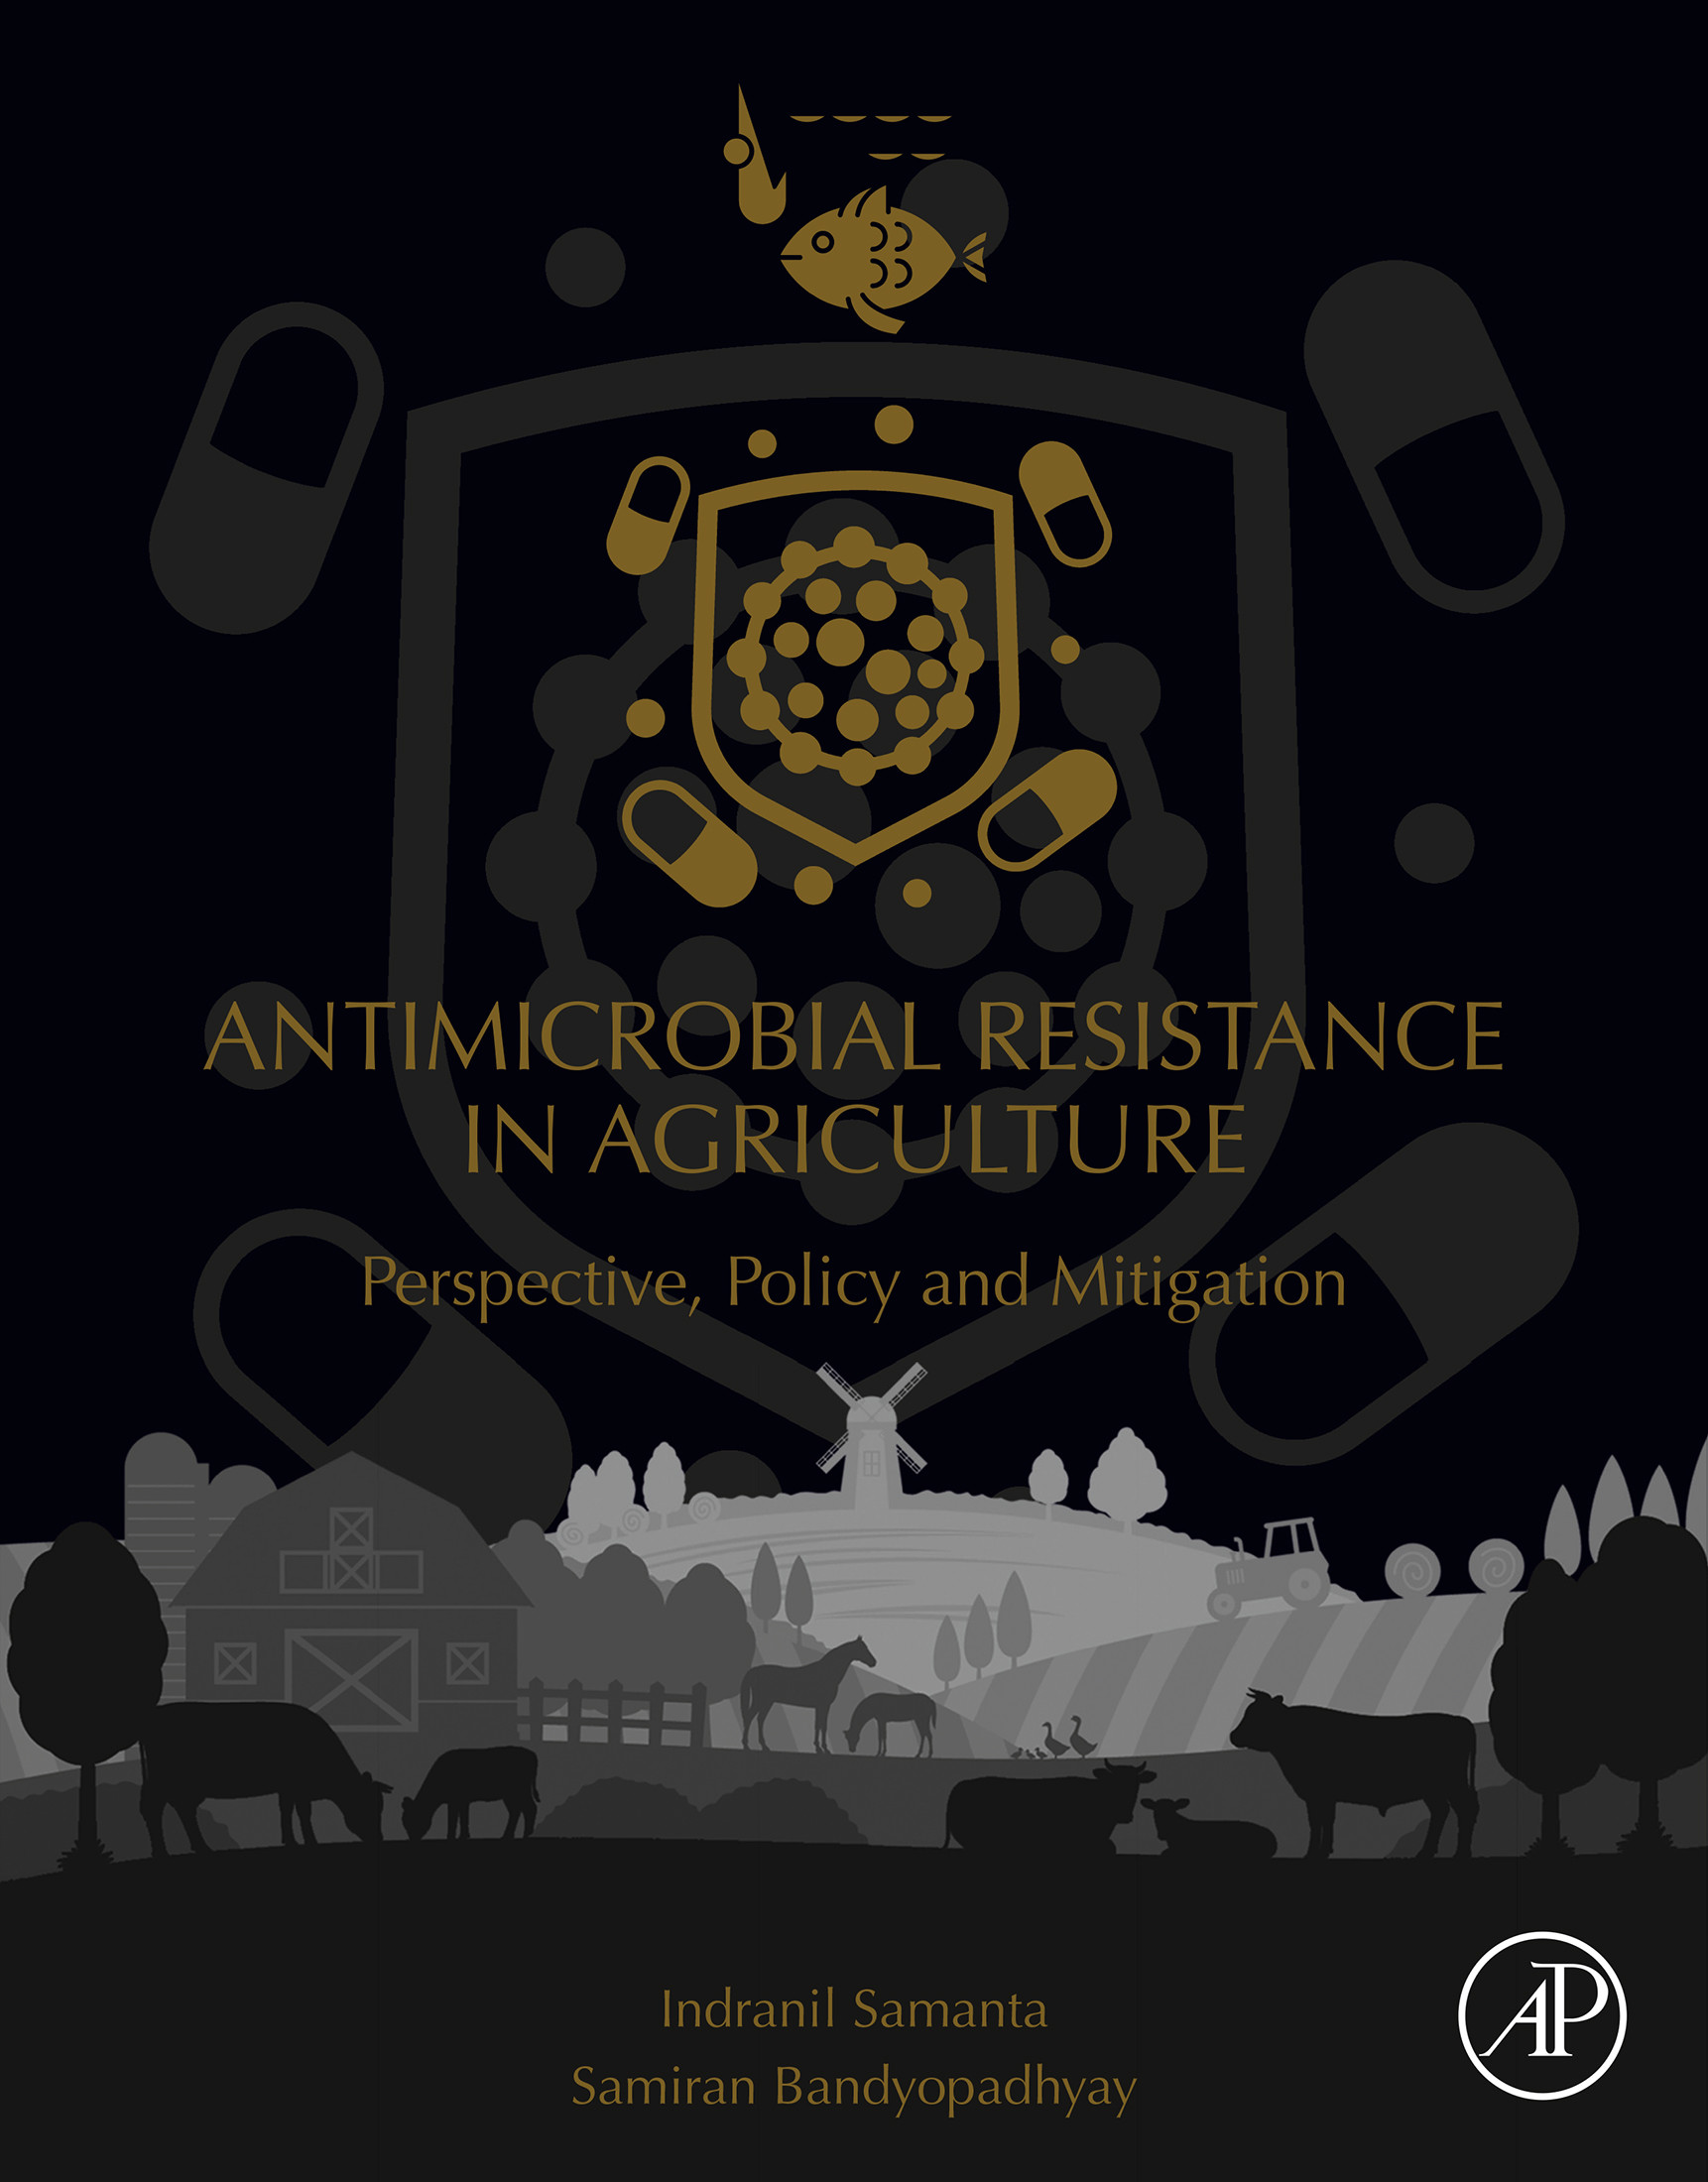 Antimicrobial Resistance in Agriculture